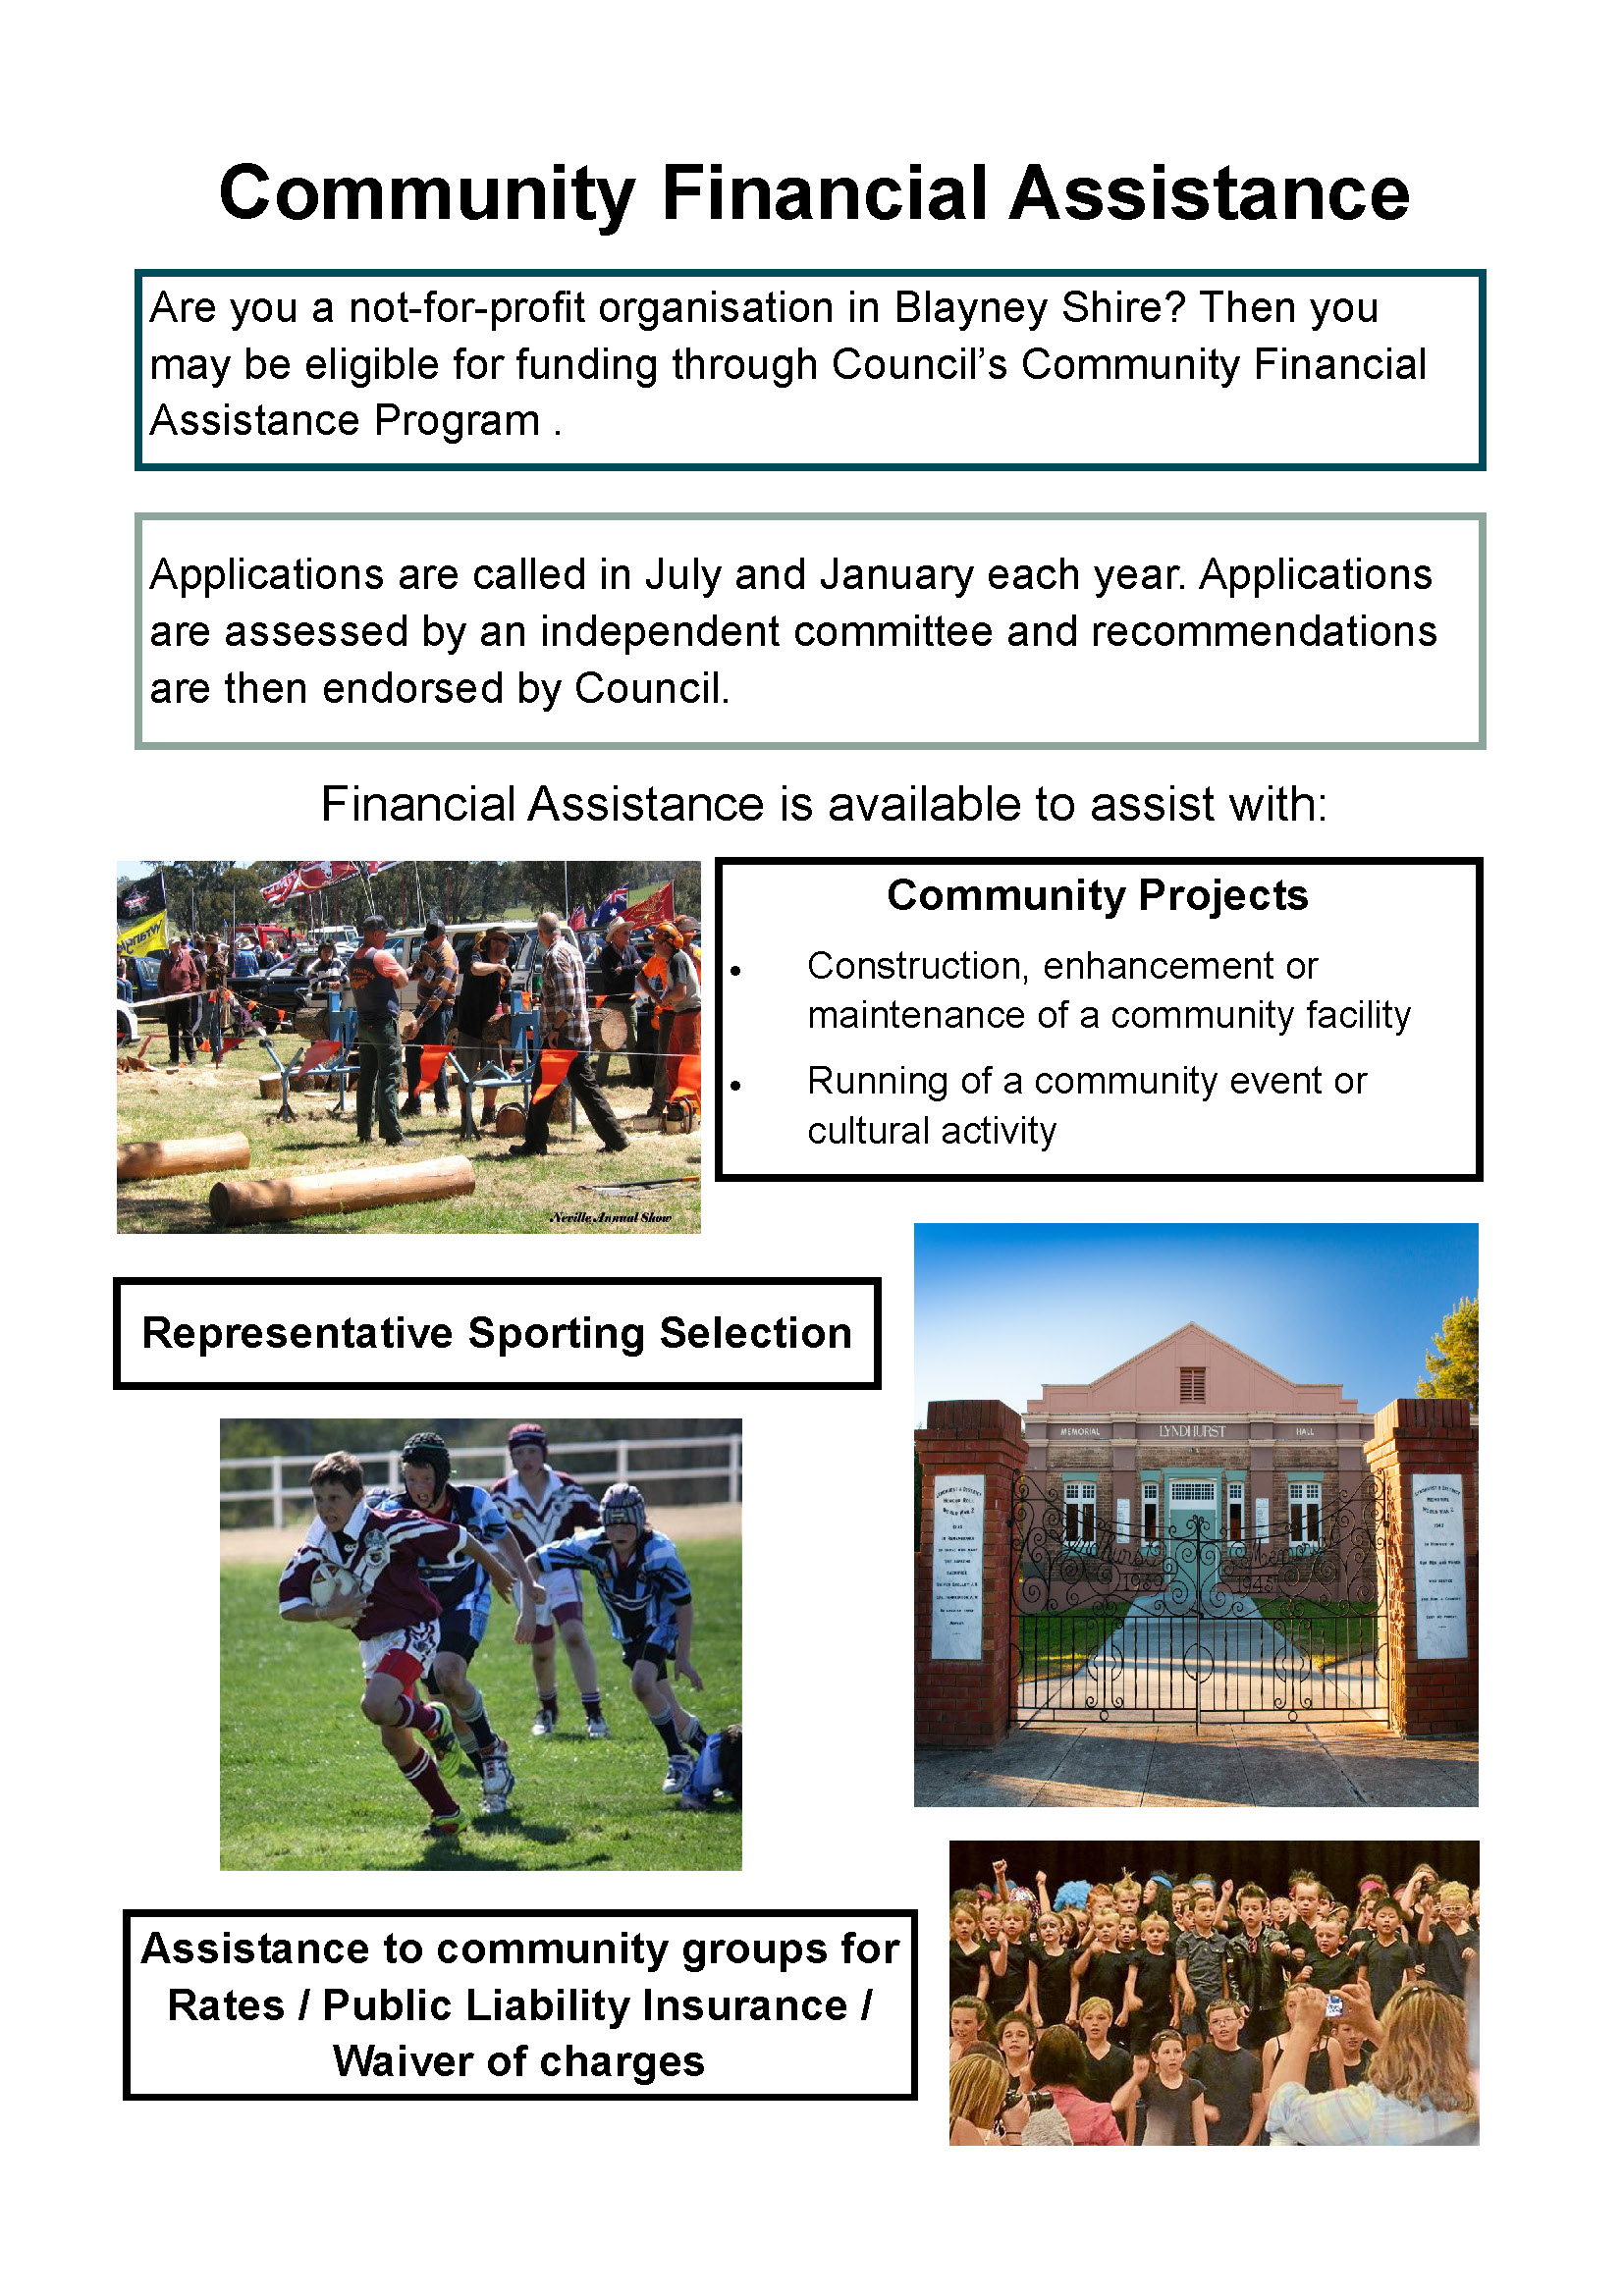 Blayney Shire Council Financial Assistance Forum Invitation and Flyer_Page_2